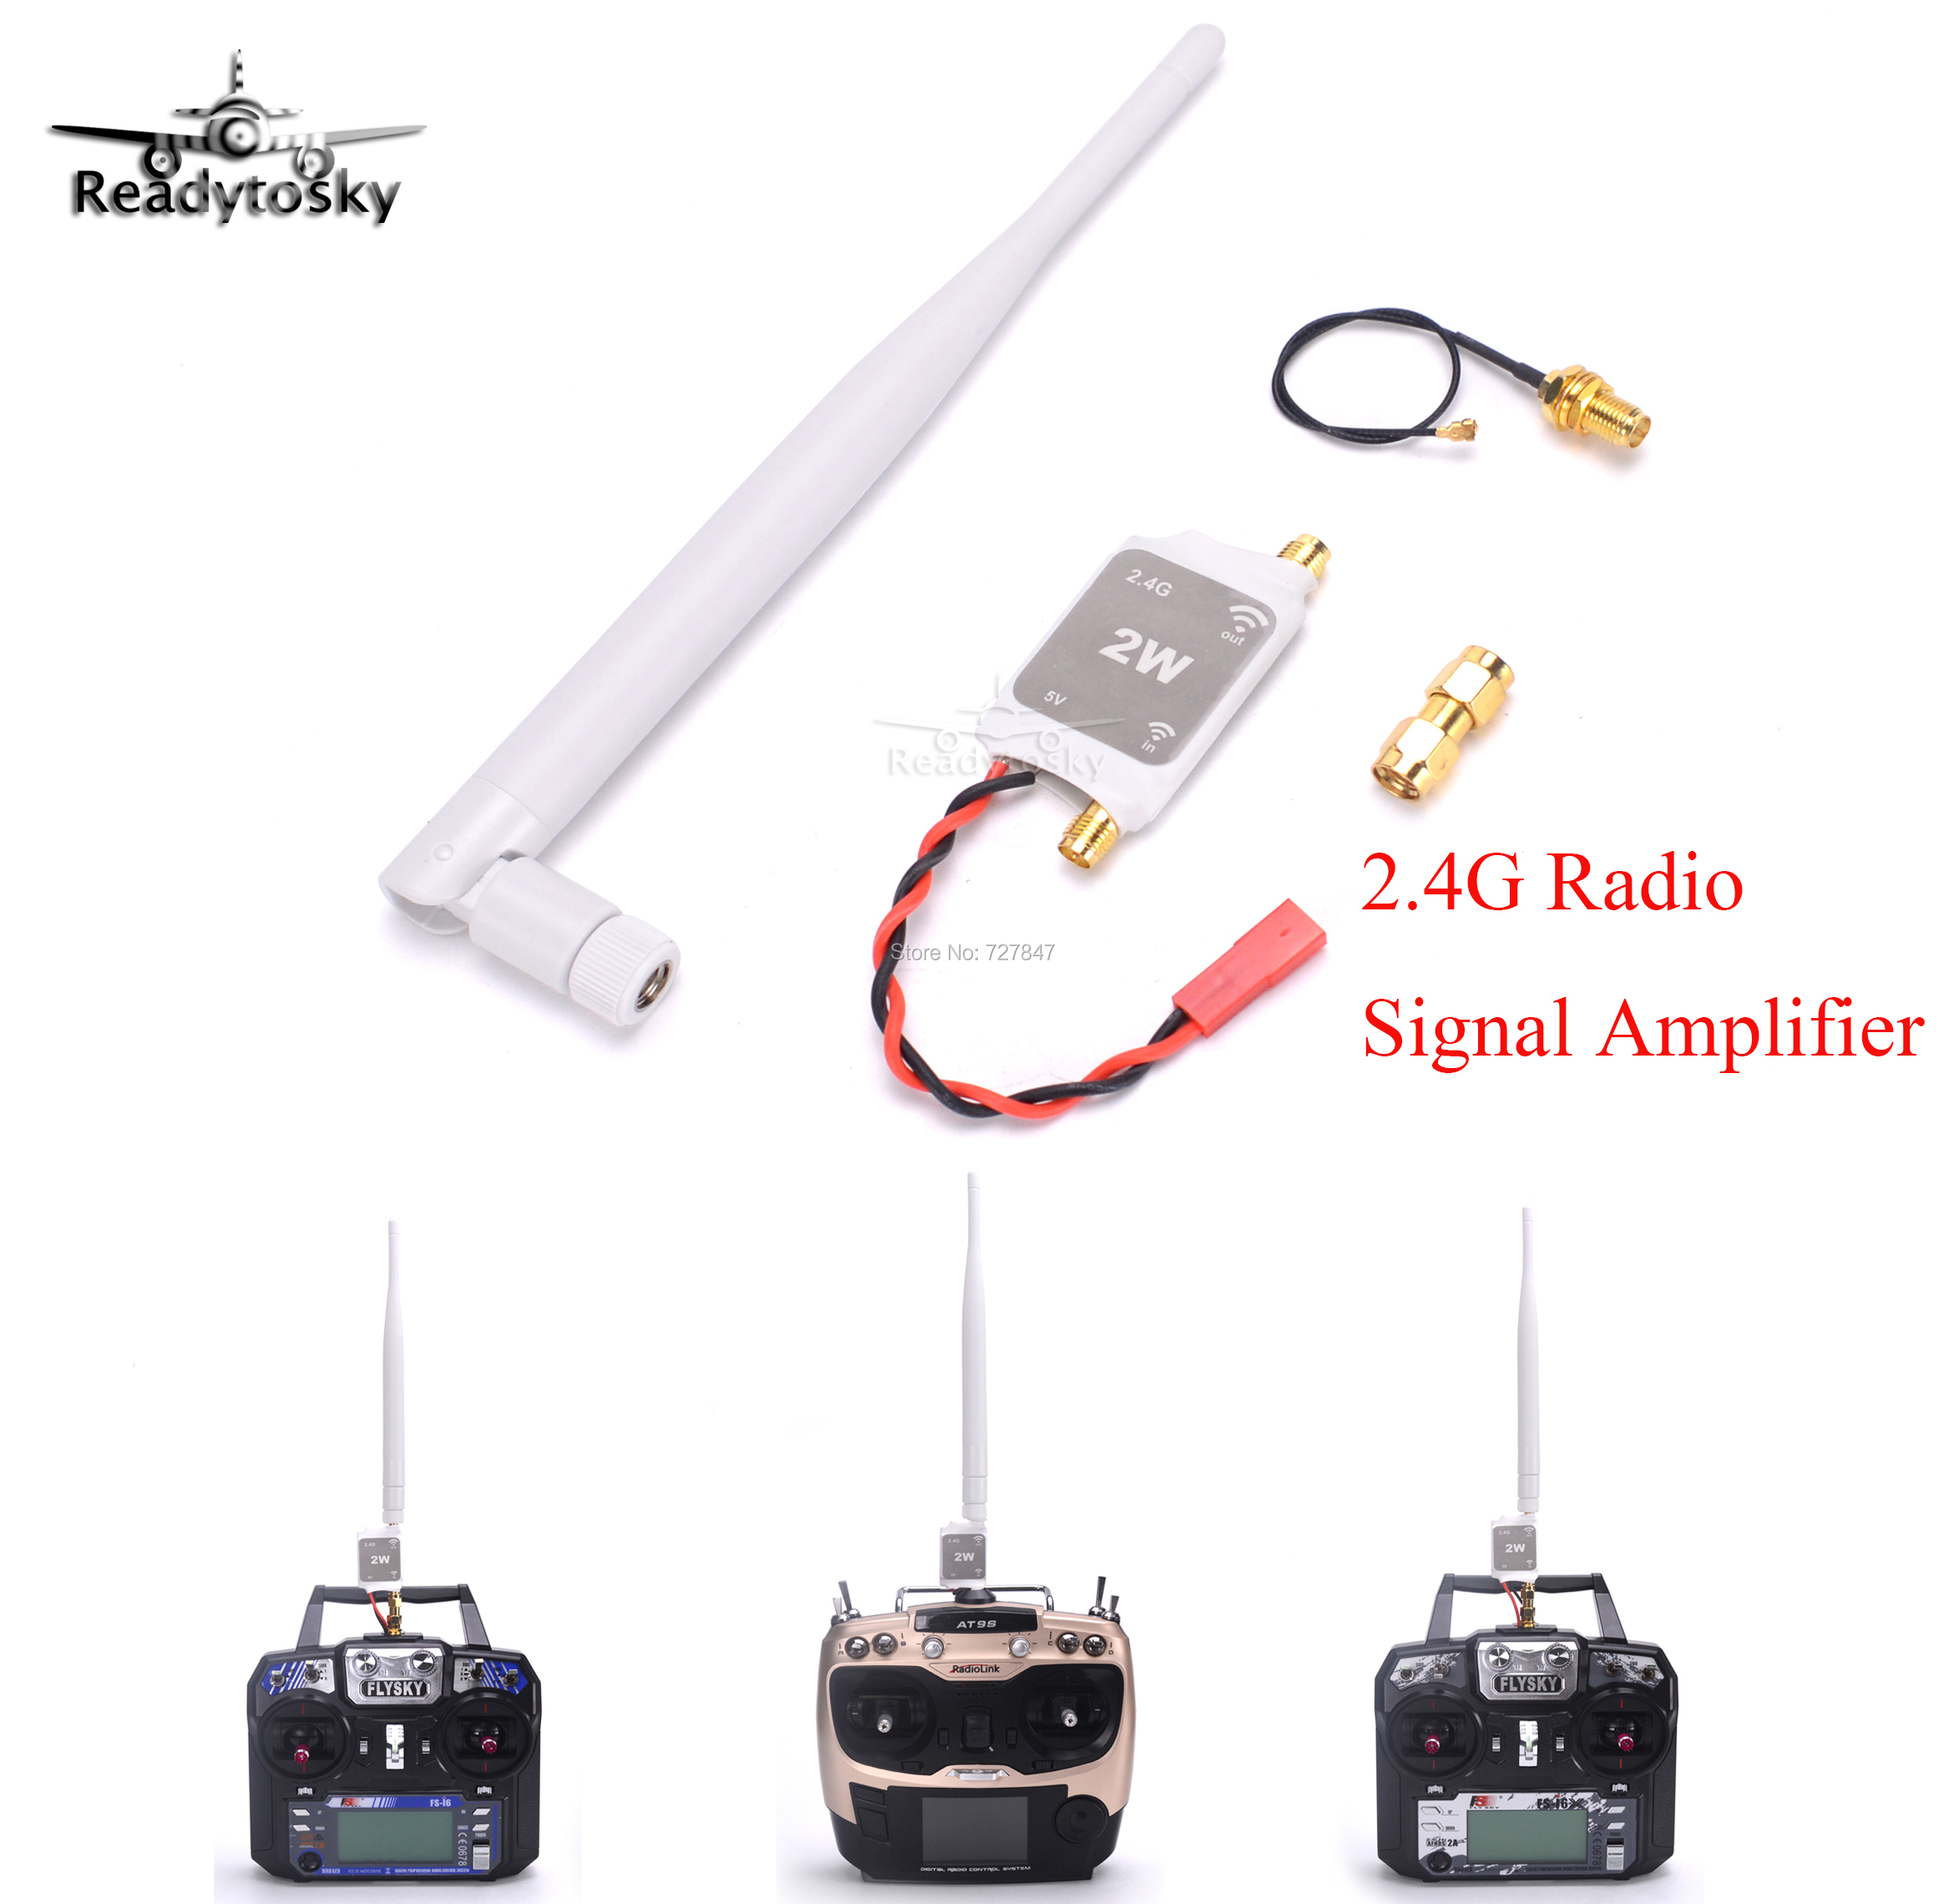 2.4G Radio Signal Amplifier Signal Booster for RC Quadcopter Multicopter Drone